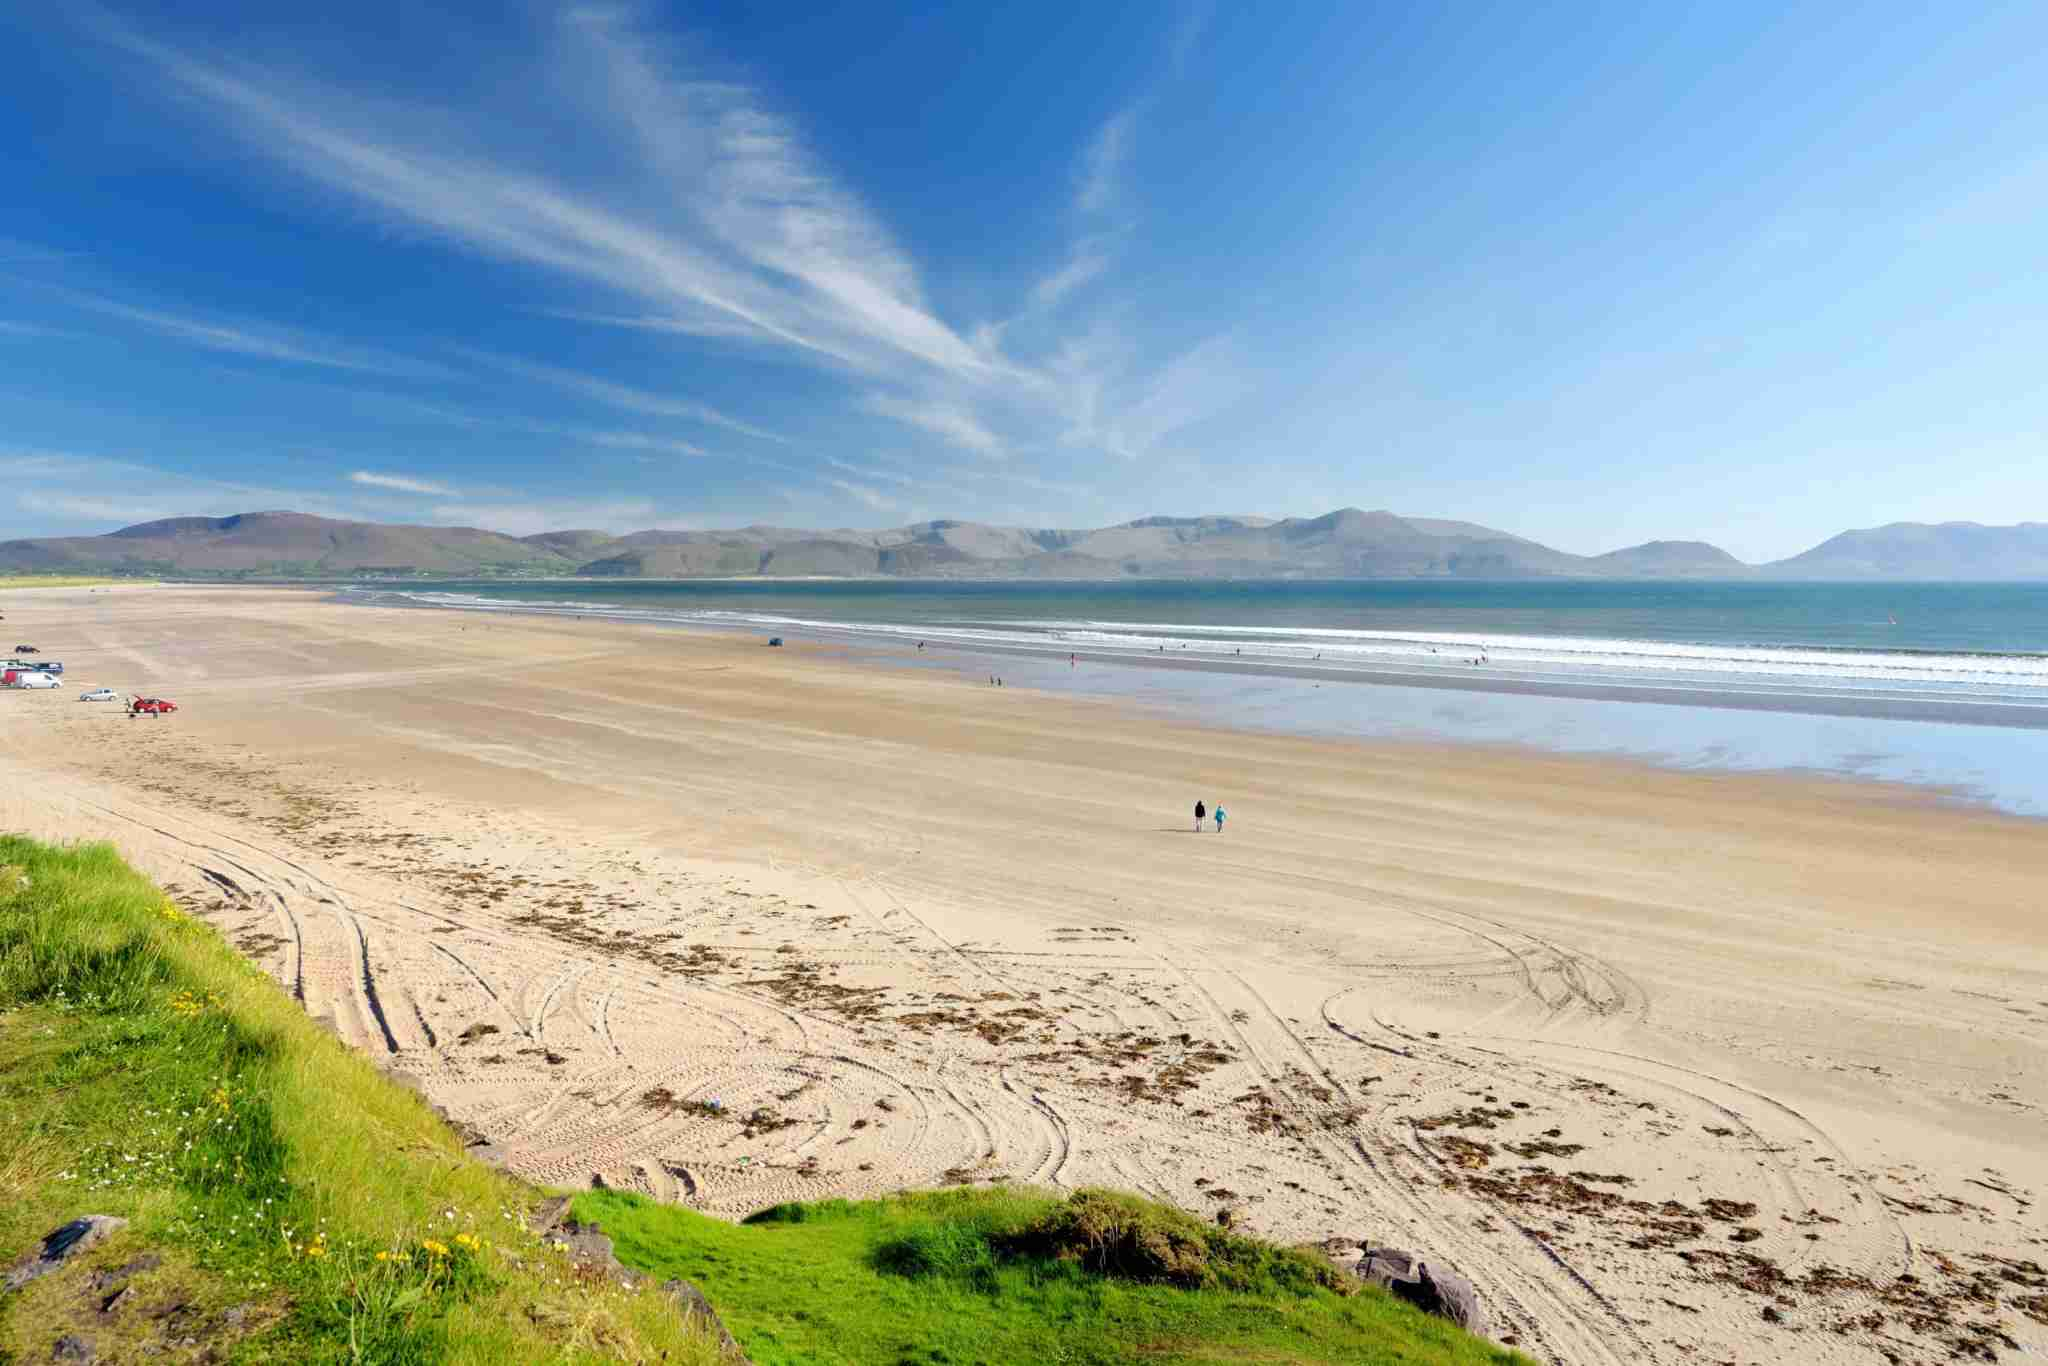 Inch beach, wonderful 5km long stretch of glorious sand and dunes, popular for surfing, swimming and fishing, located on the Dingle Peninsula, County Kerry, Ireland. (Photo by MNStudio/Getty Images)